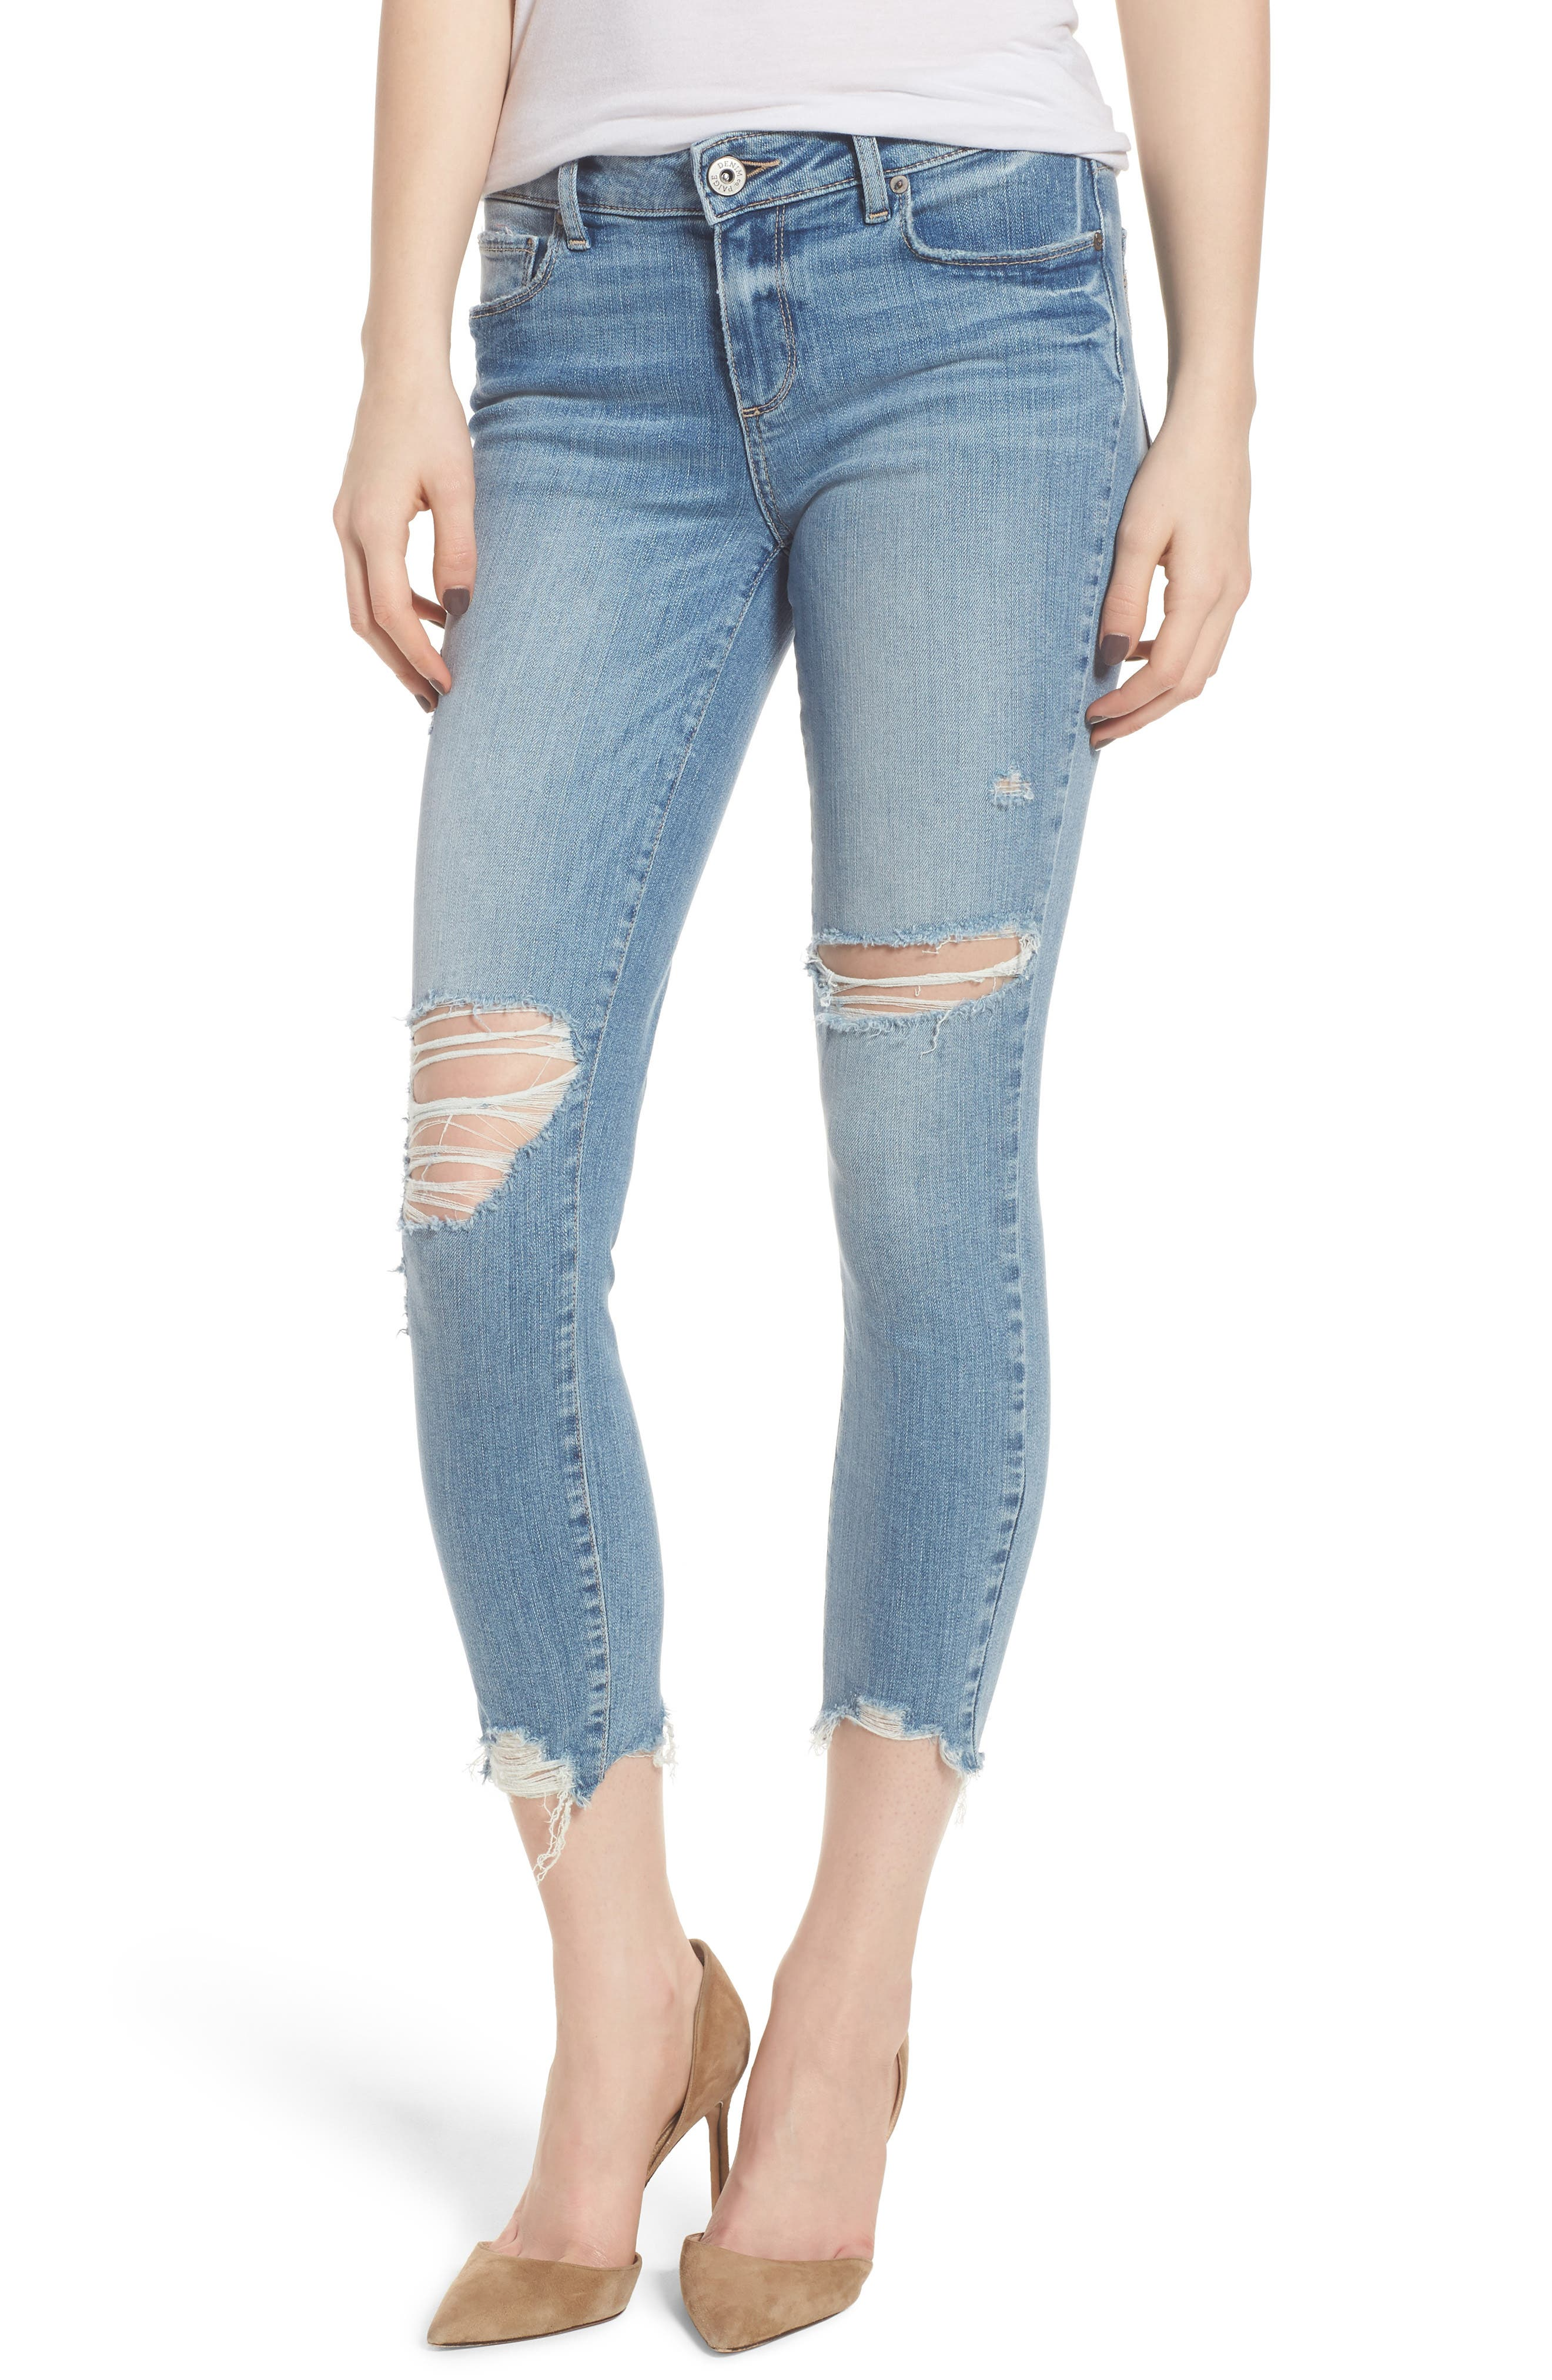 Verdugo Ripped Crop Ultra Skinny Jeans,                             Main thumbnail 1, color,                             Janis Destructed